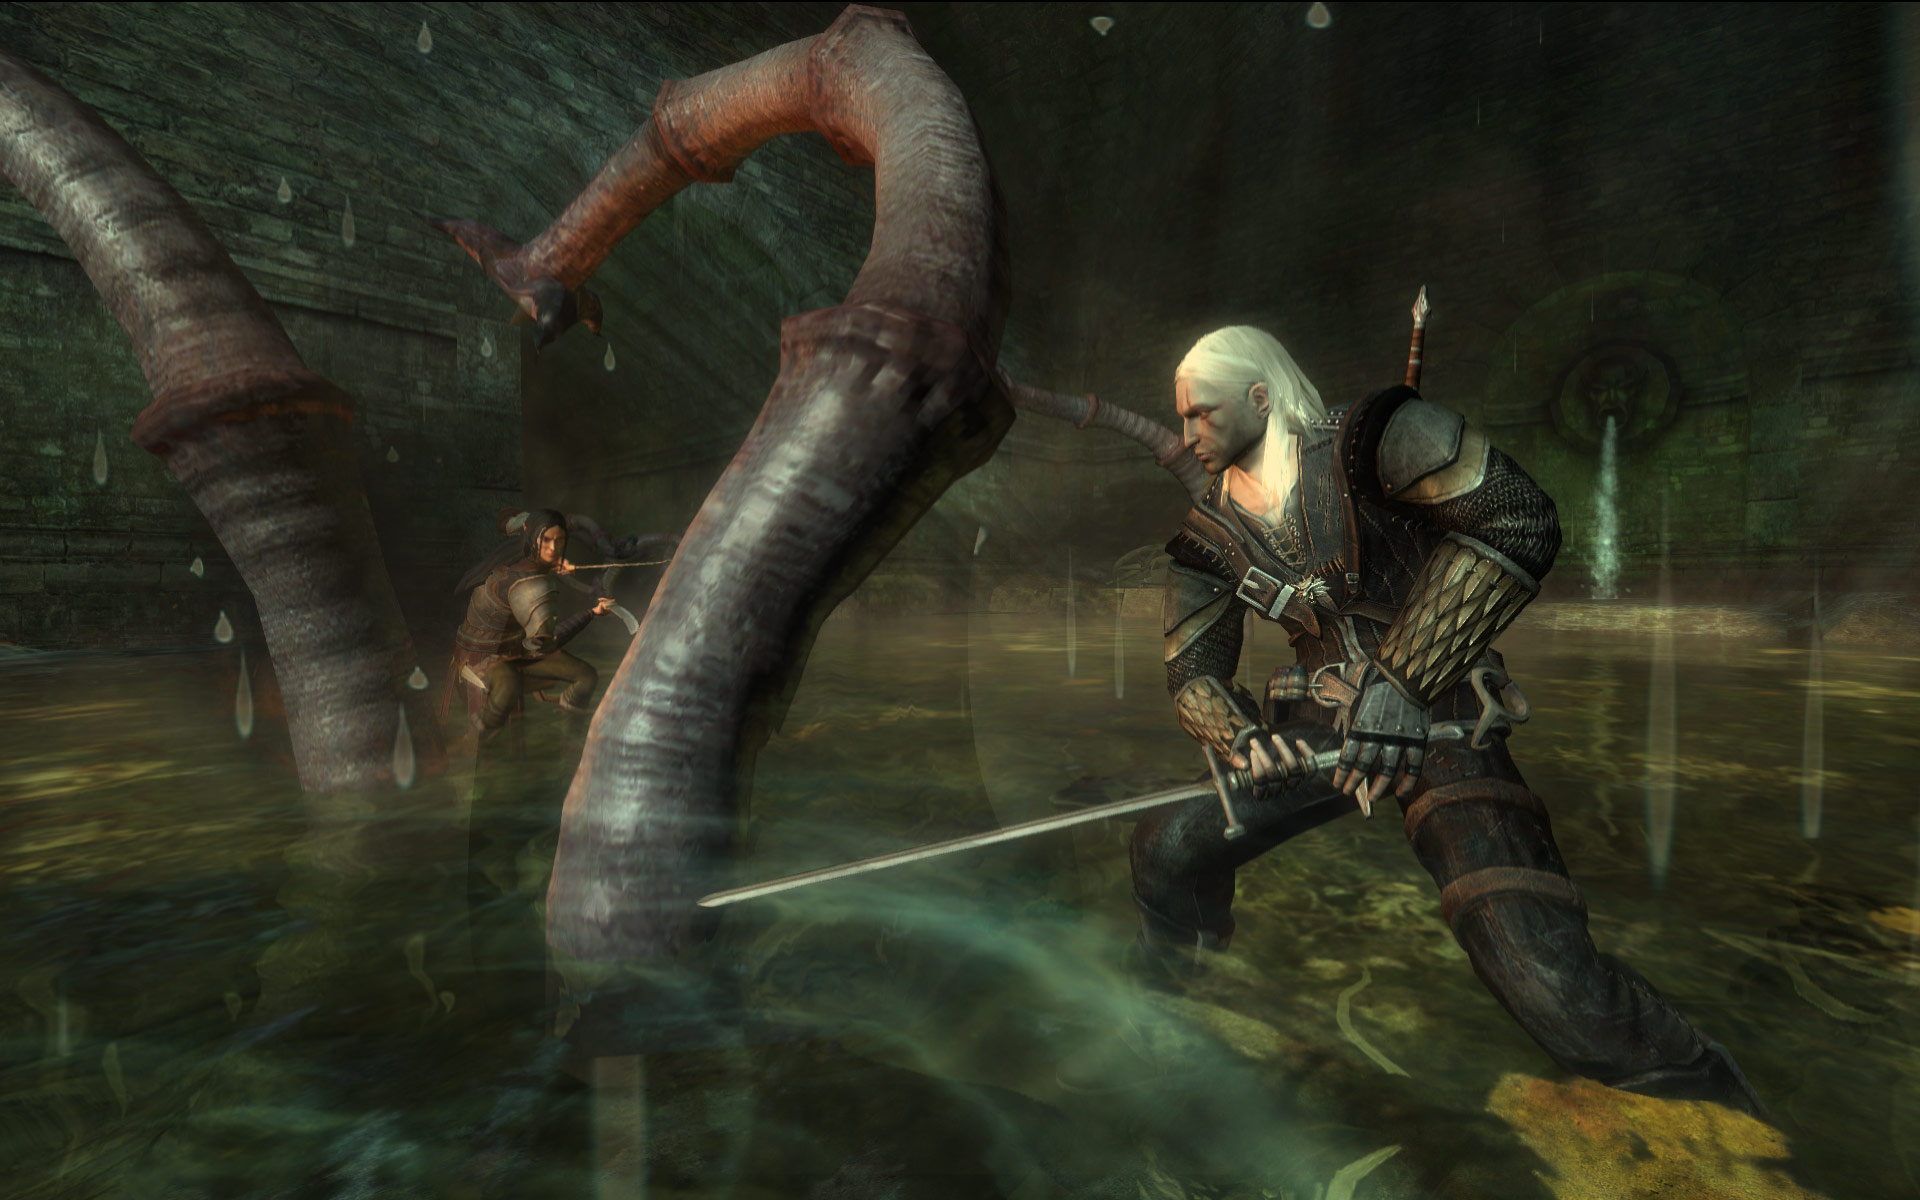 The Witcher: Director's Cut Update screenshot